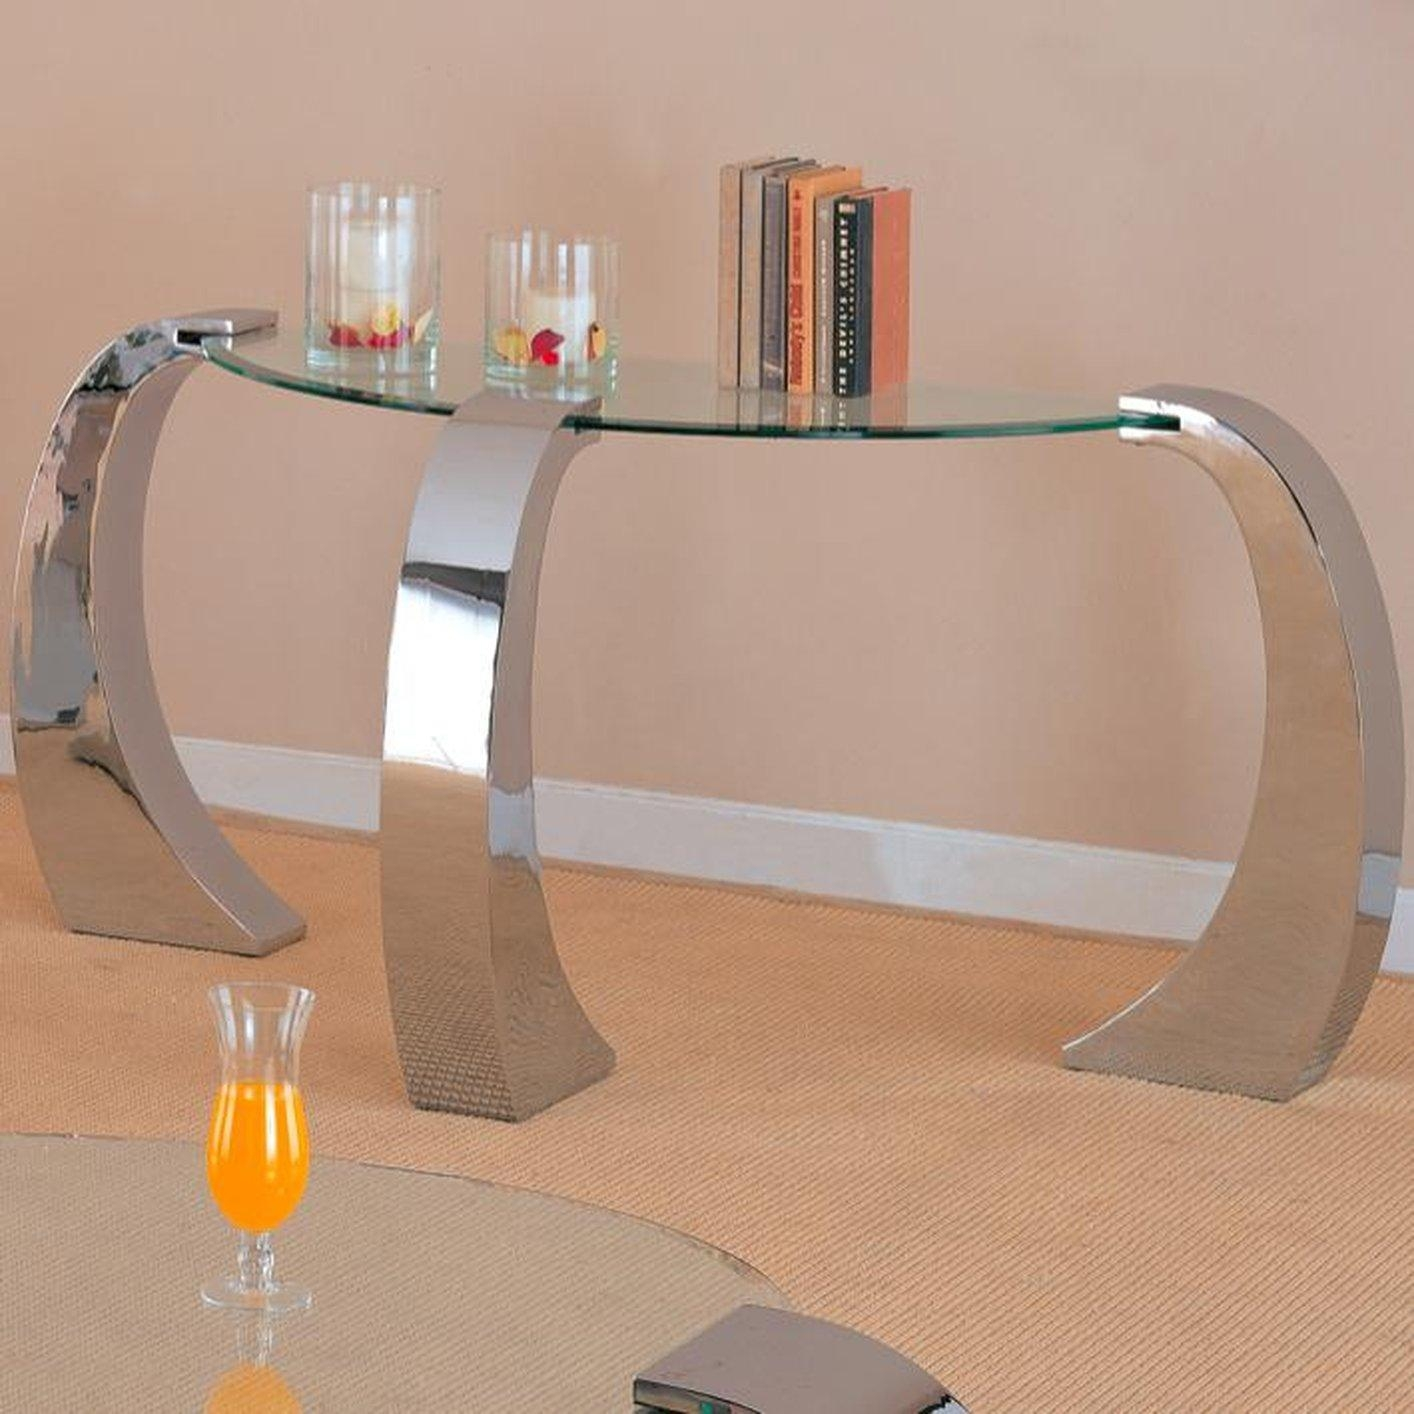 Sofa Table Design: Glass Sofa Tables Contemporary Astounding Glam Pertaining To Metal Glass Sofa Tables (View 17 of 22)